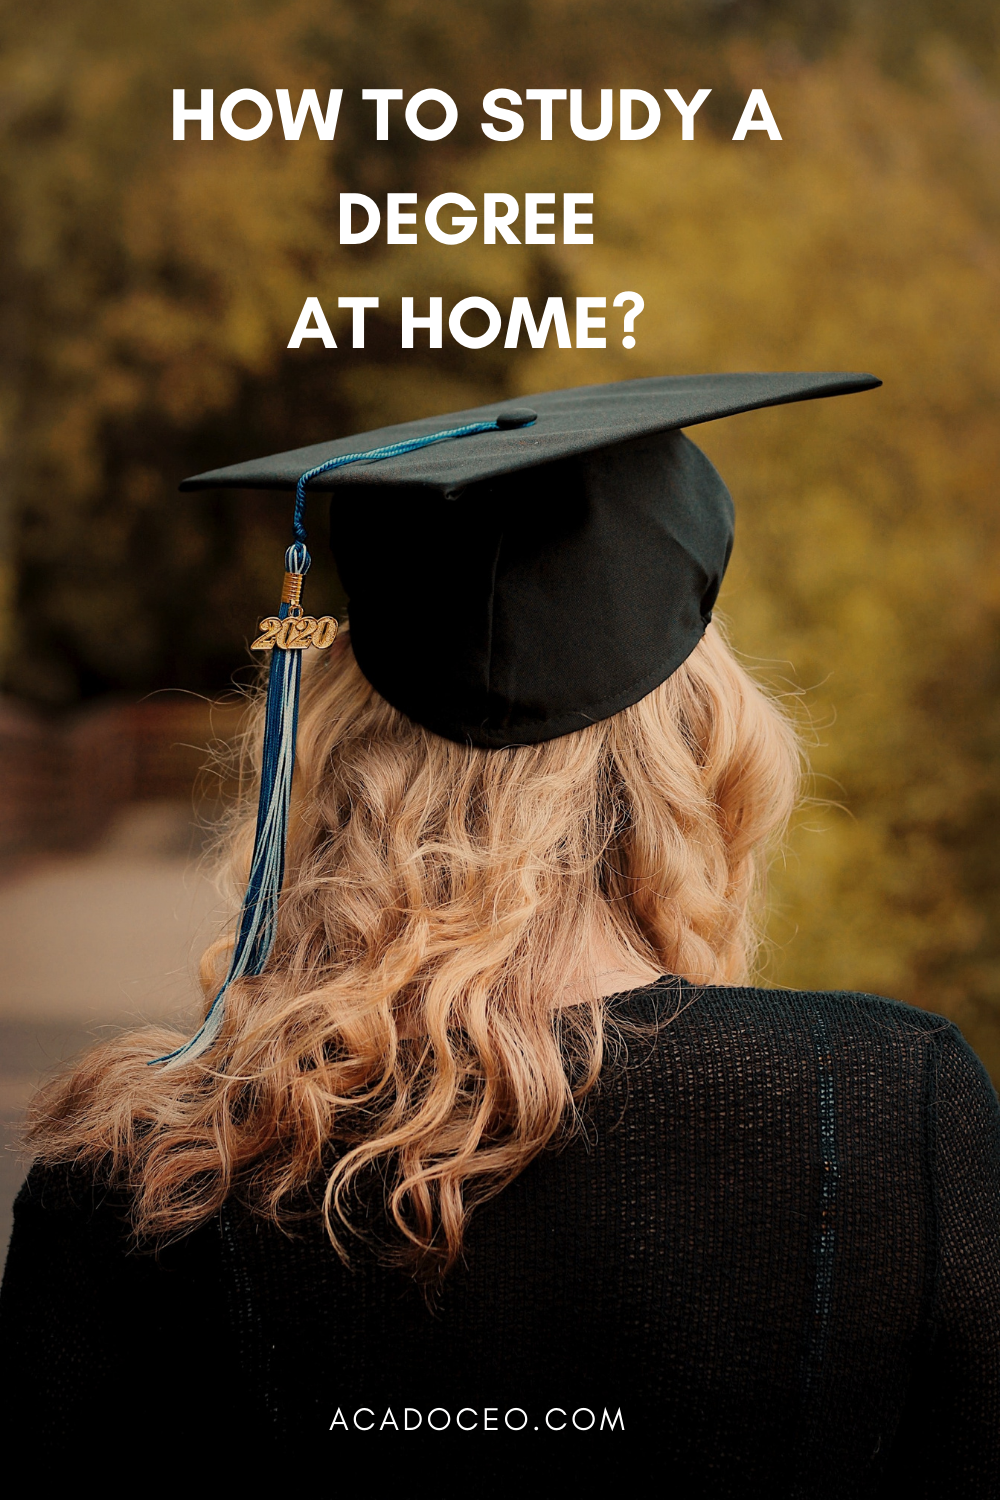 HOW TO A STUDY A DEGREE AT HOME?